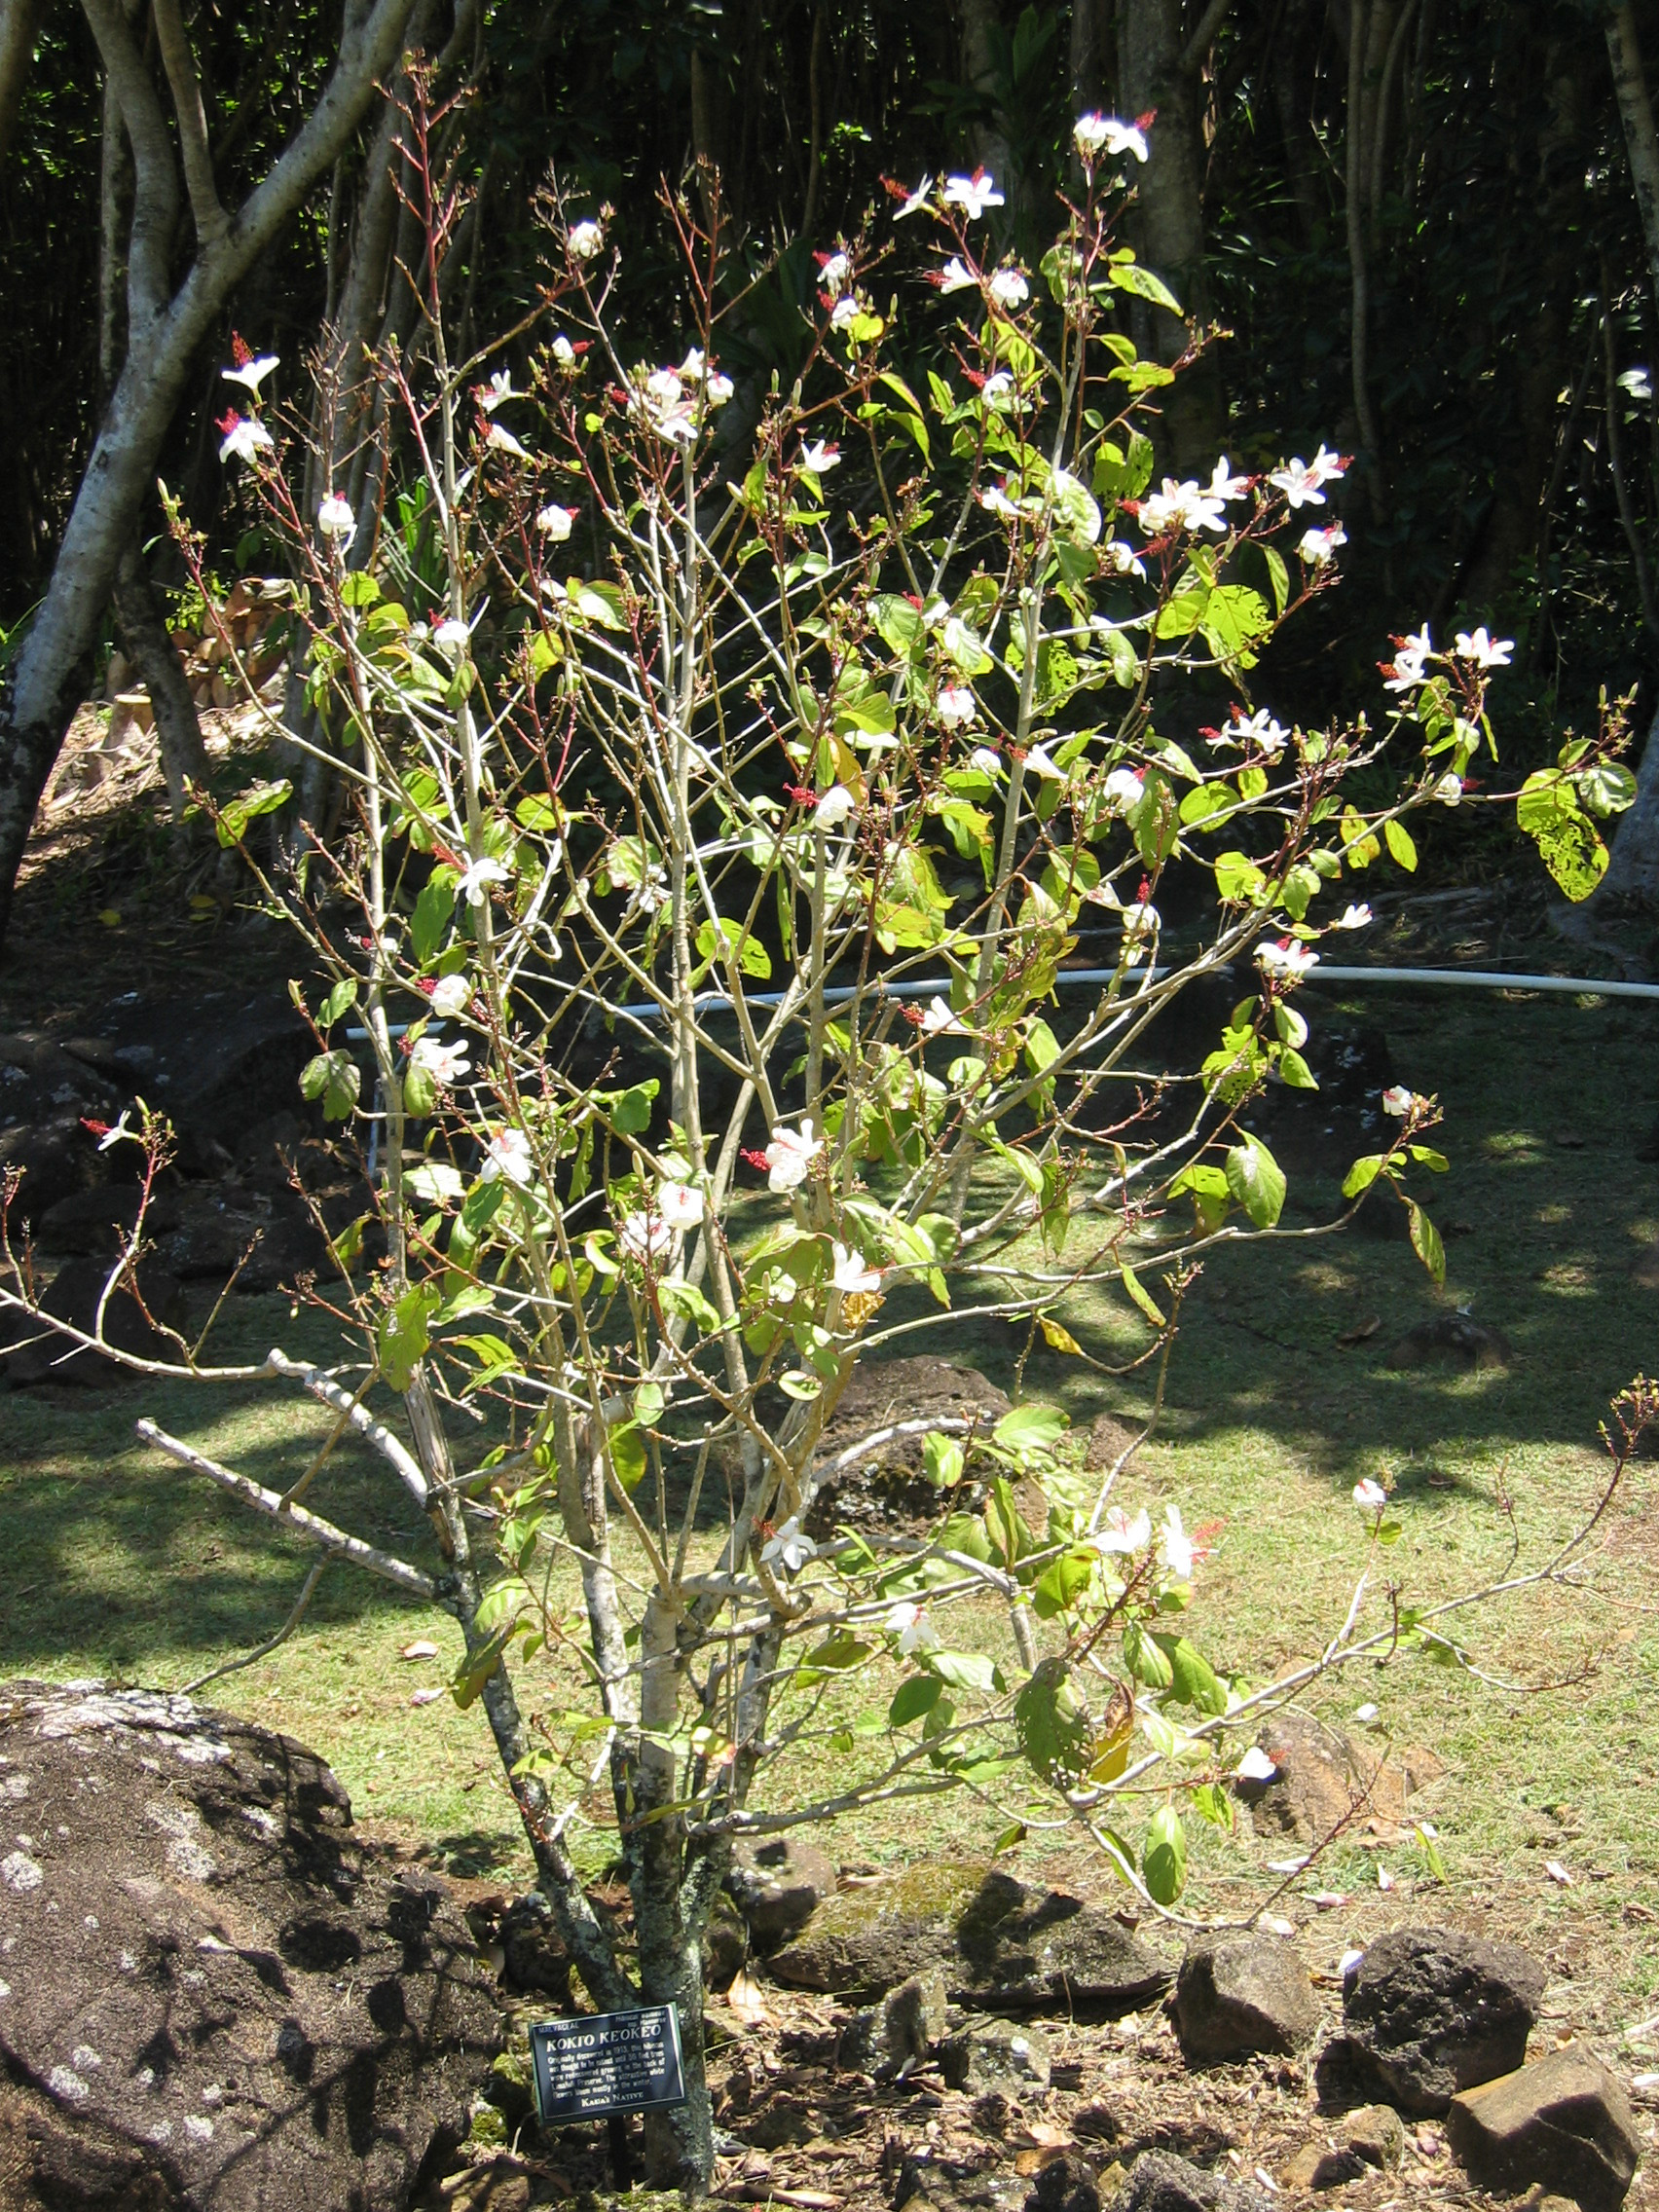 Hibiscus waimeae subsp. hannerae  - Habit, in full flower